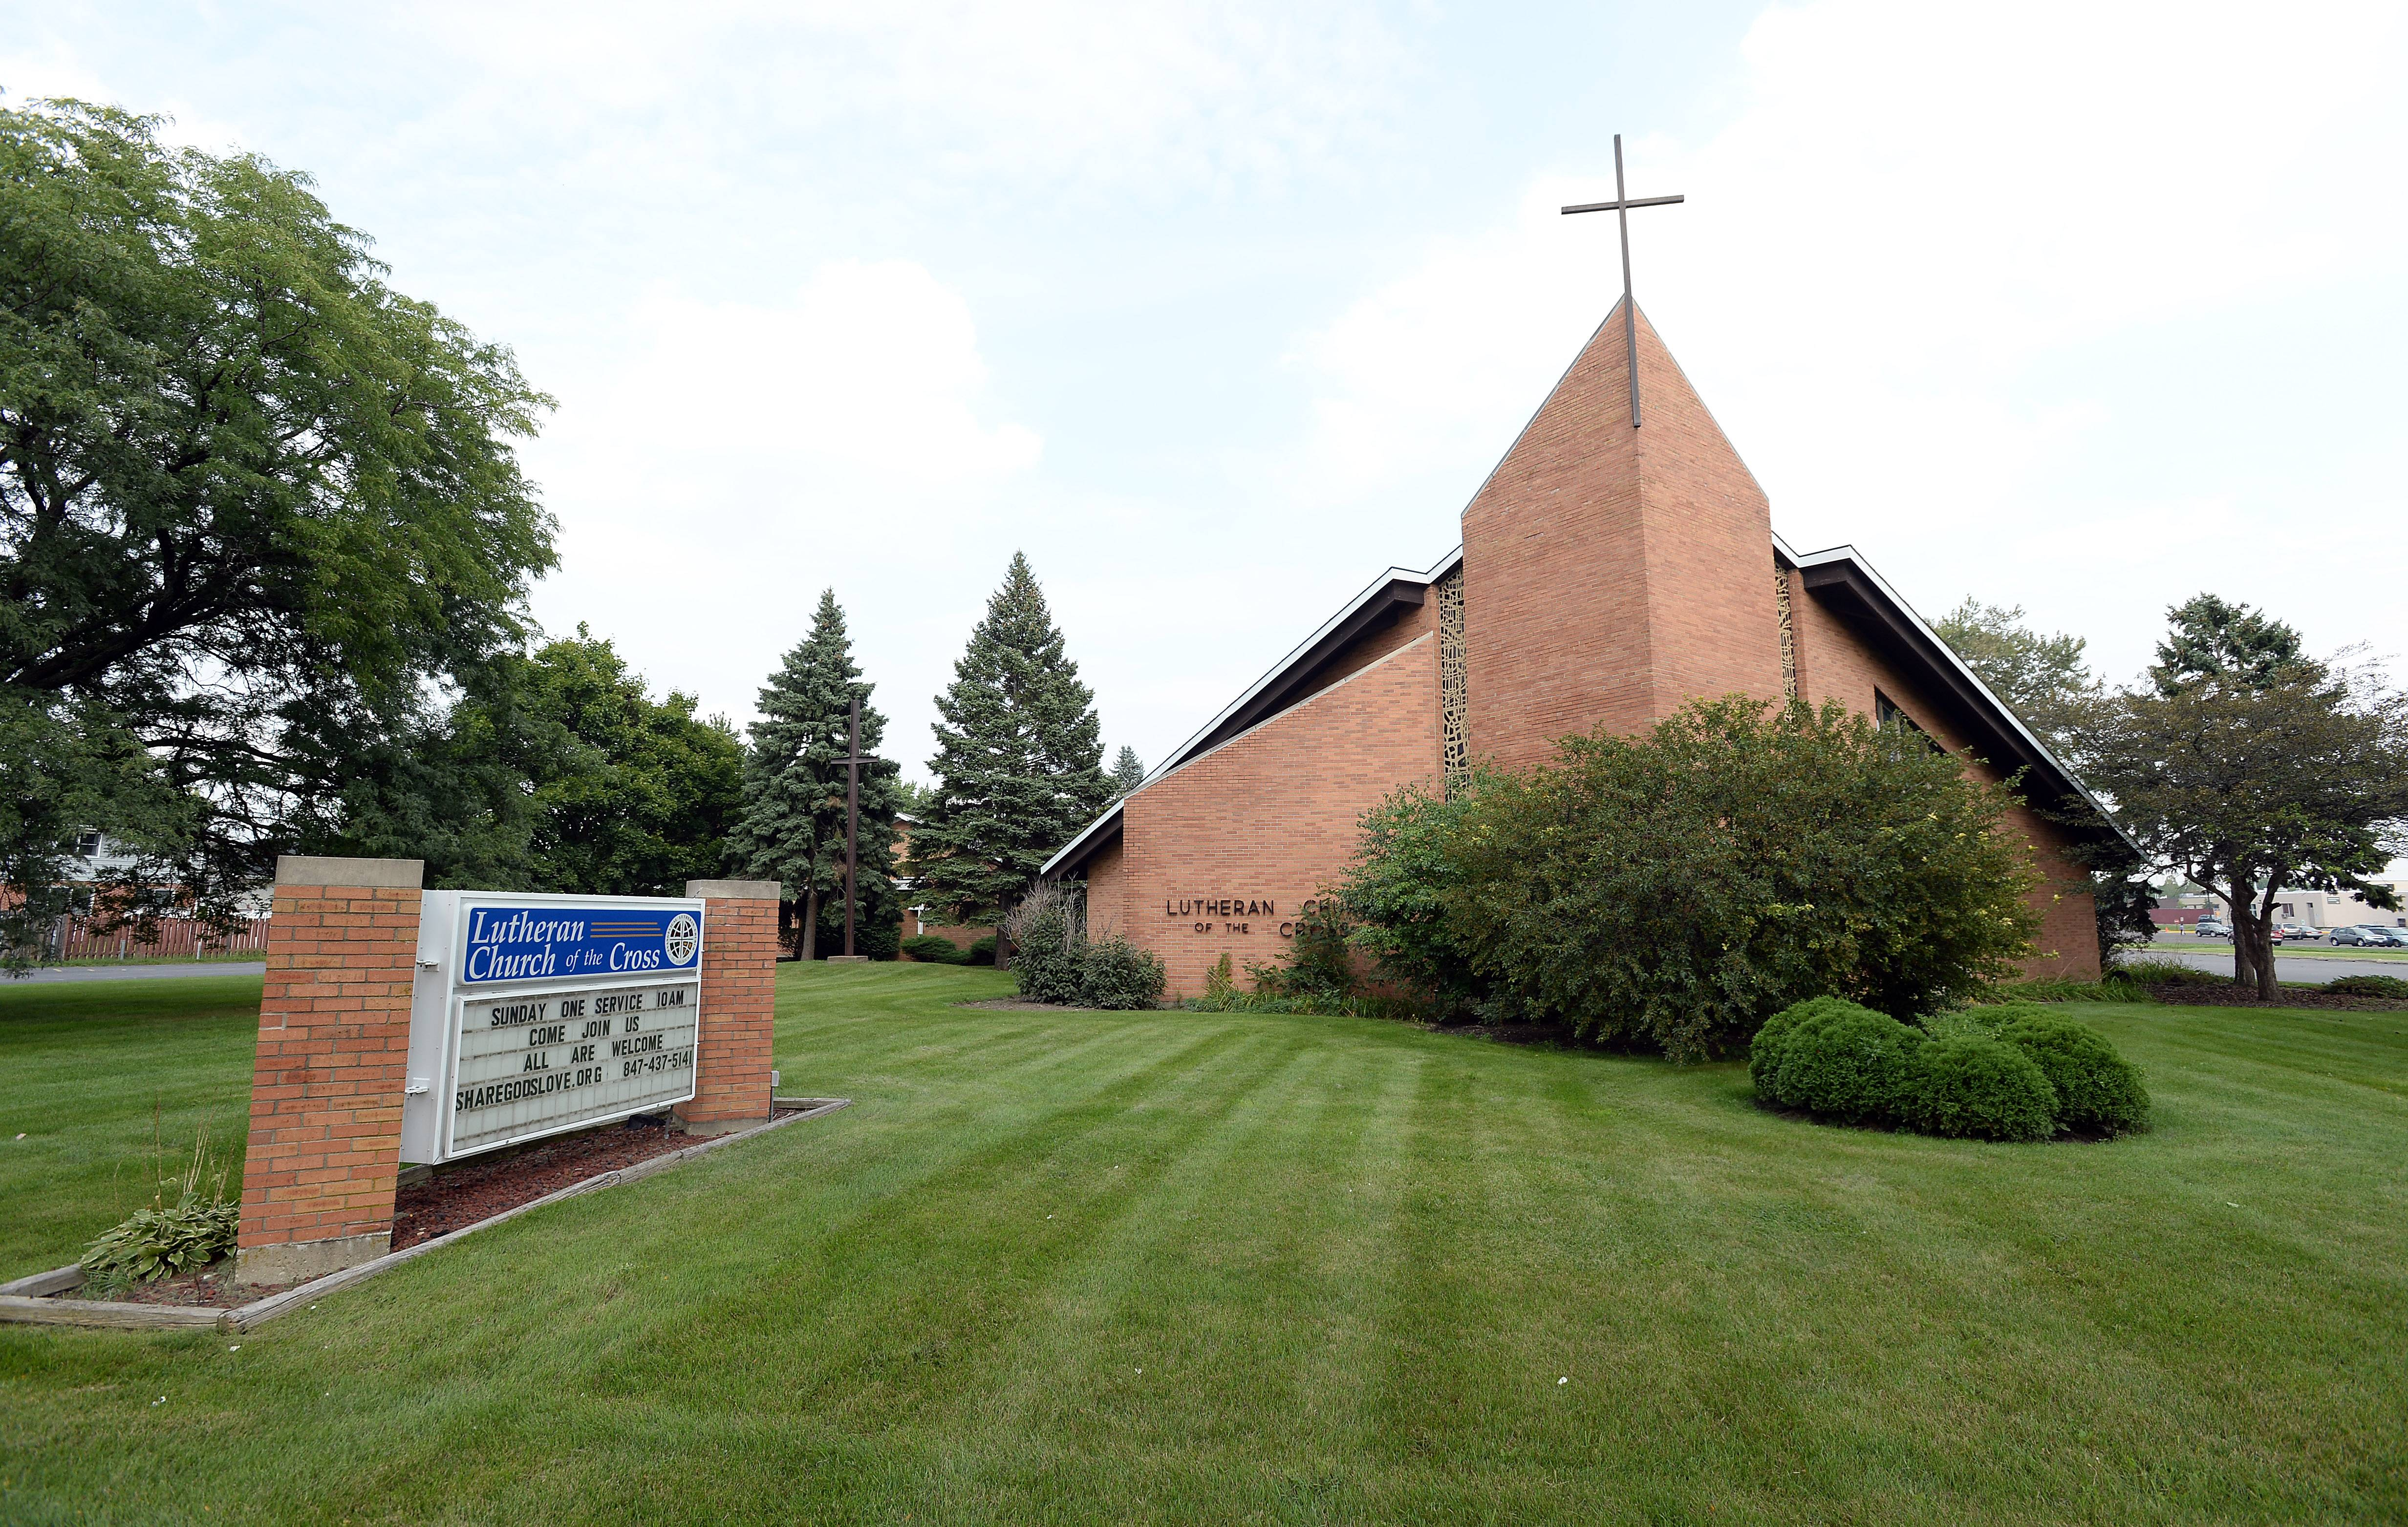 The Lutheran Church of the Cross in Arlington Heights back lot area is the proposed site of a warehouselike community closet that would be used for clothes and food for the needy in the community.